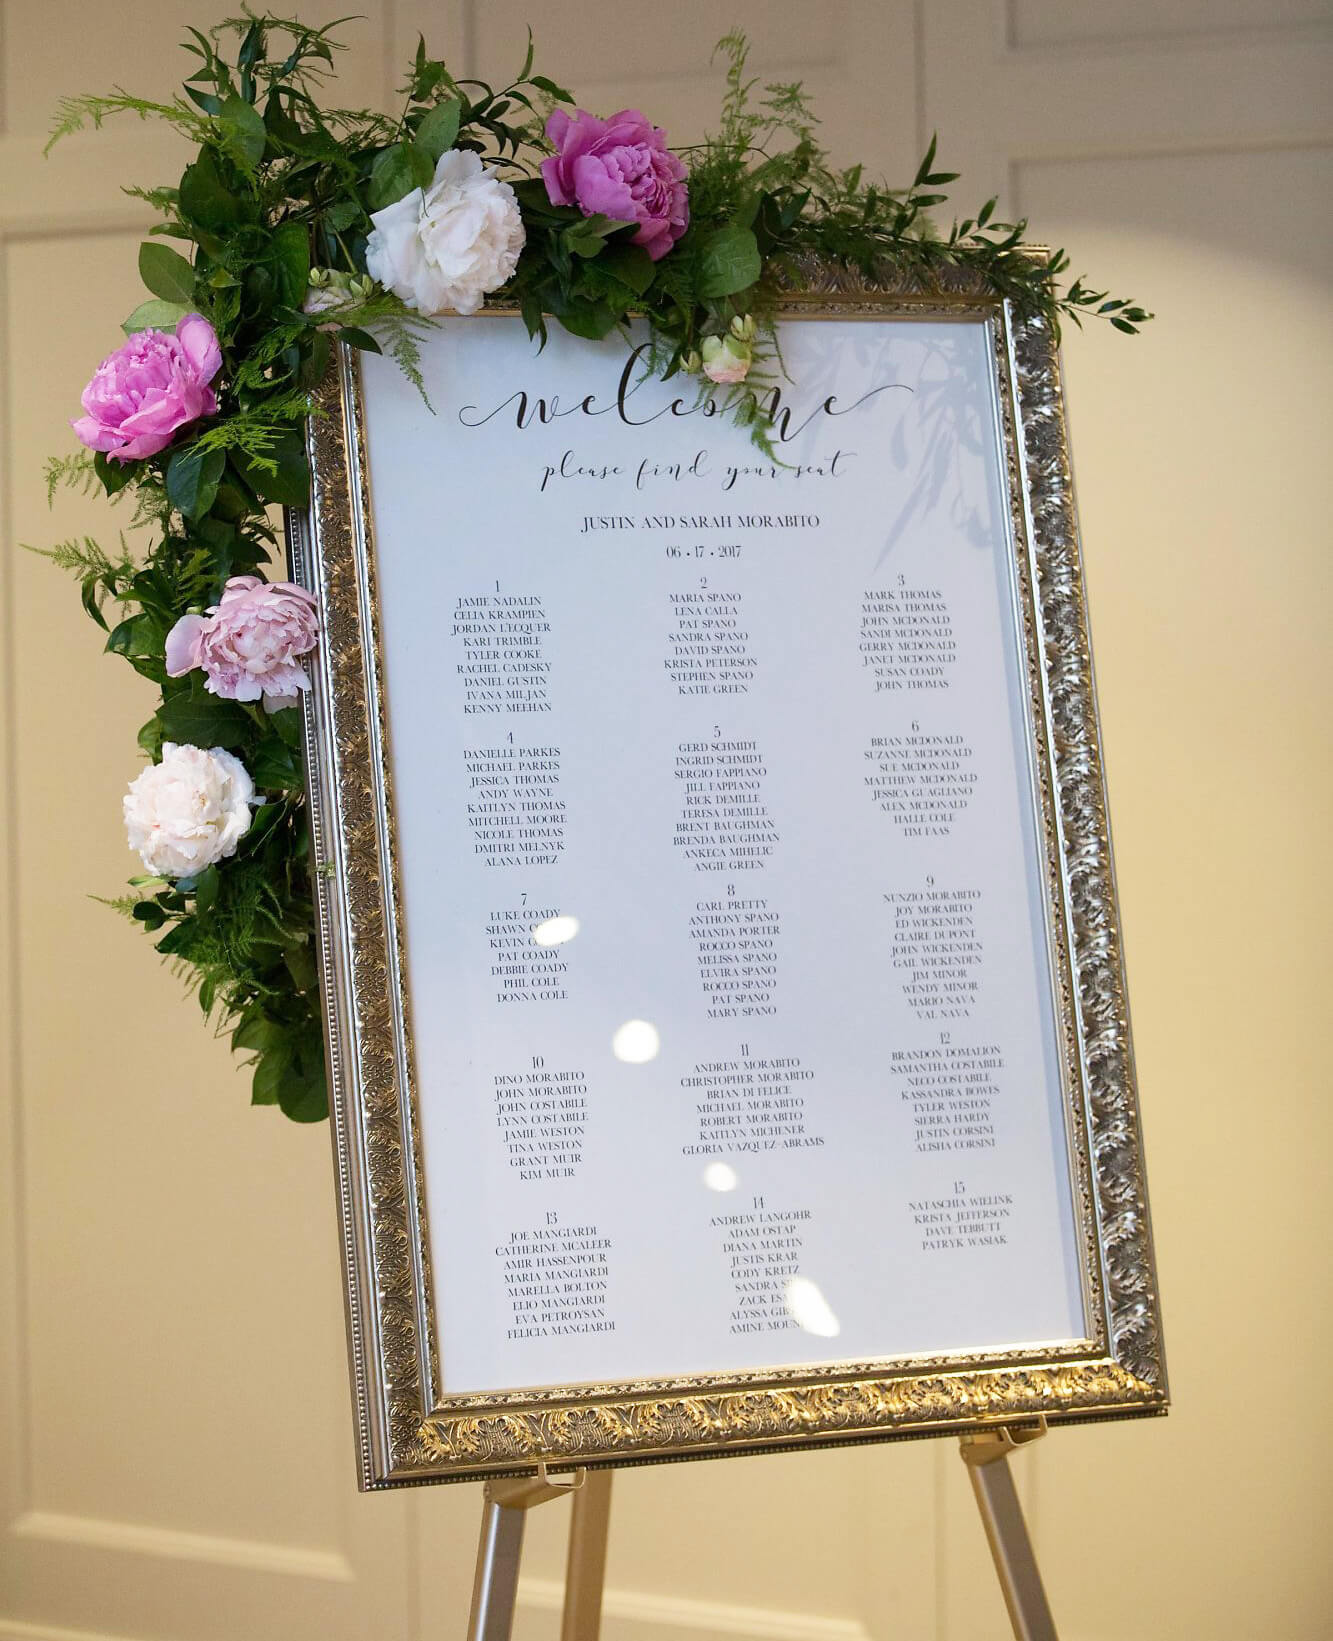 Elegant seating chart in gold frame on easel with white and pink peony leaf floral garland - Champagne, Blush and Gold Niagara Wedding - Historia Wedding and Event Planning